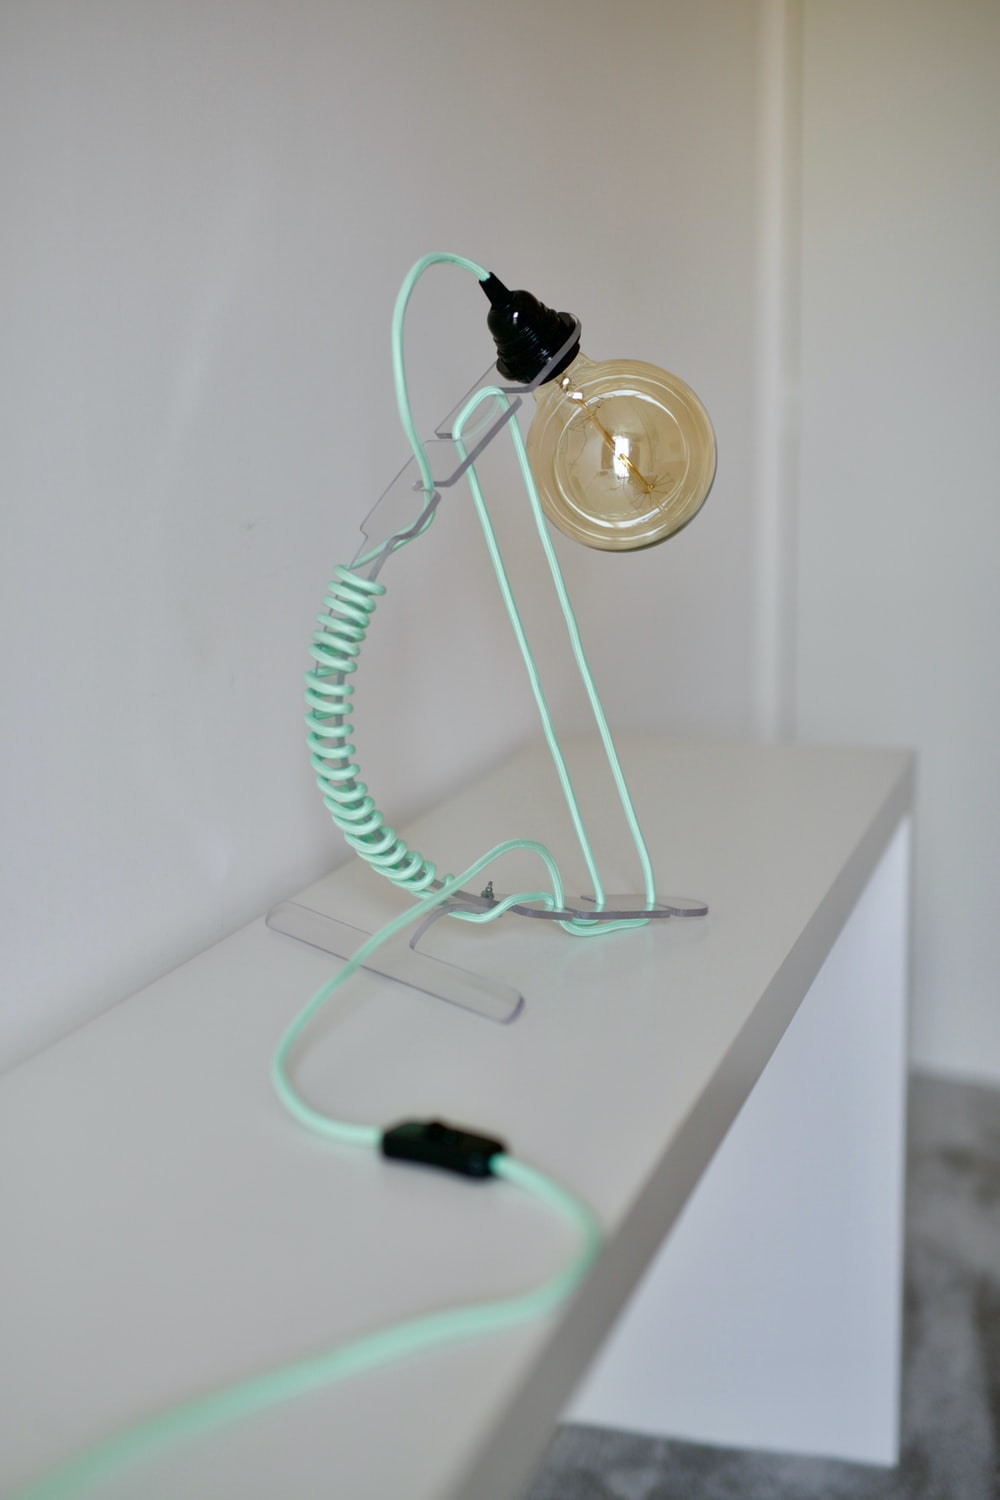 green and black earphones on white wooden table